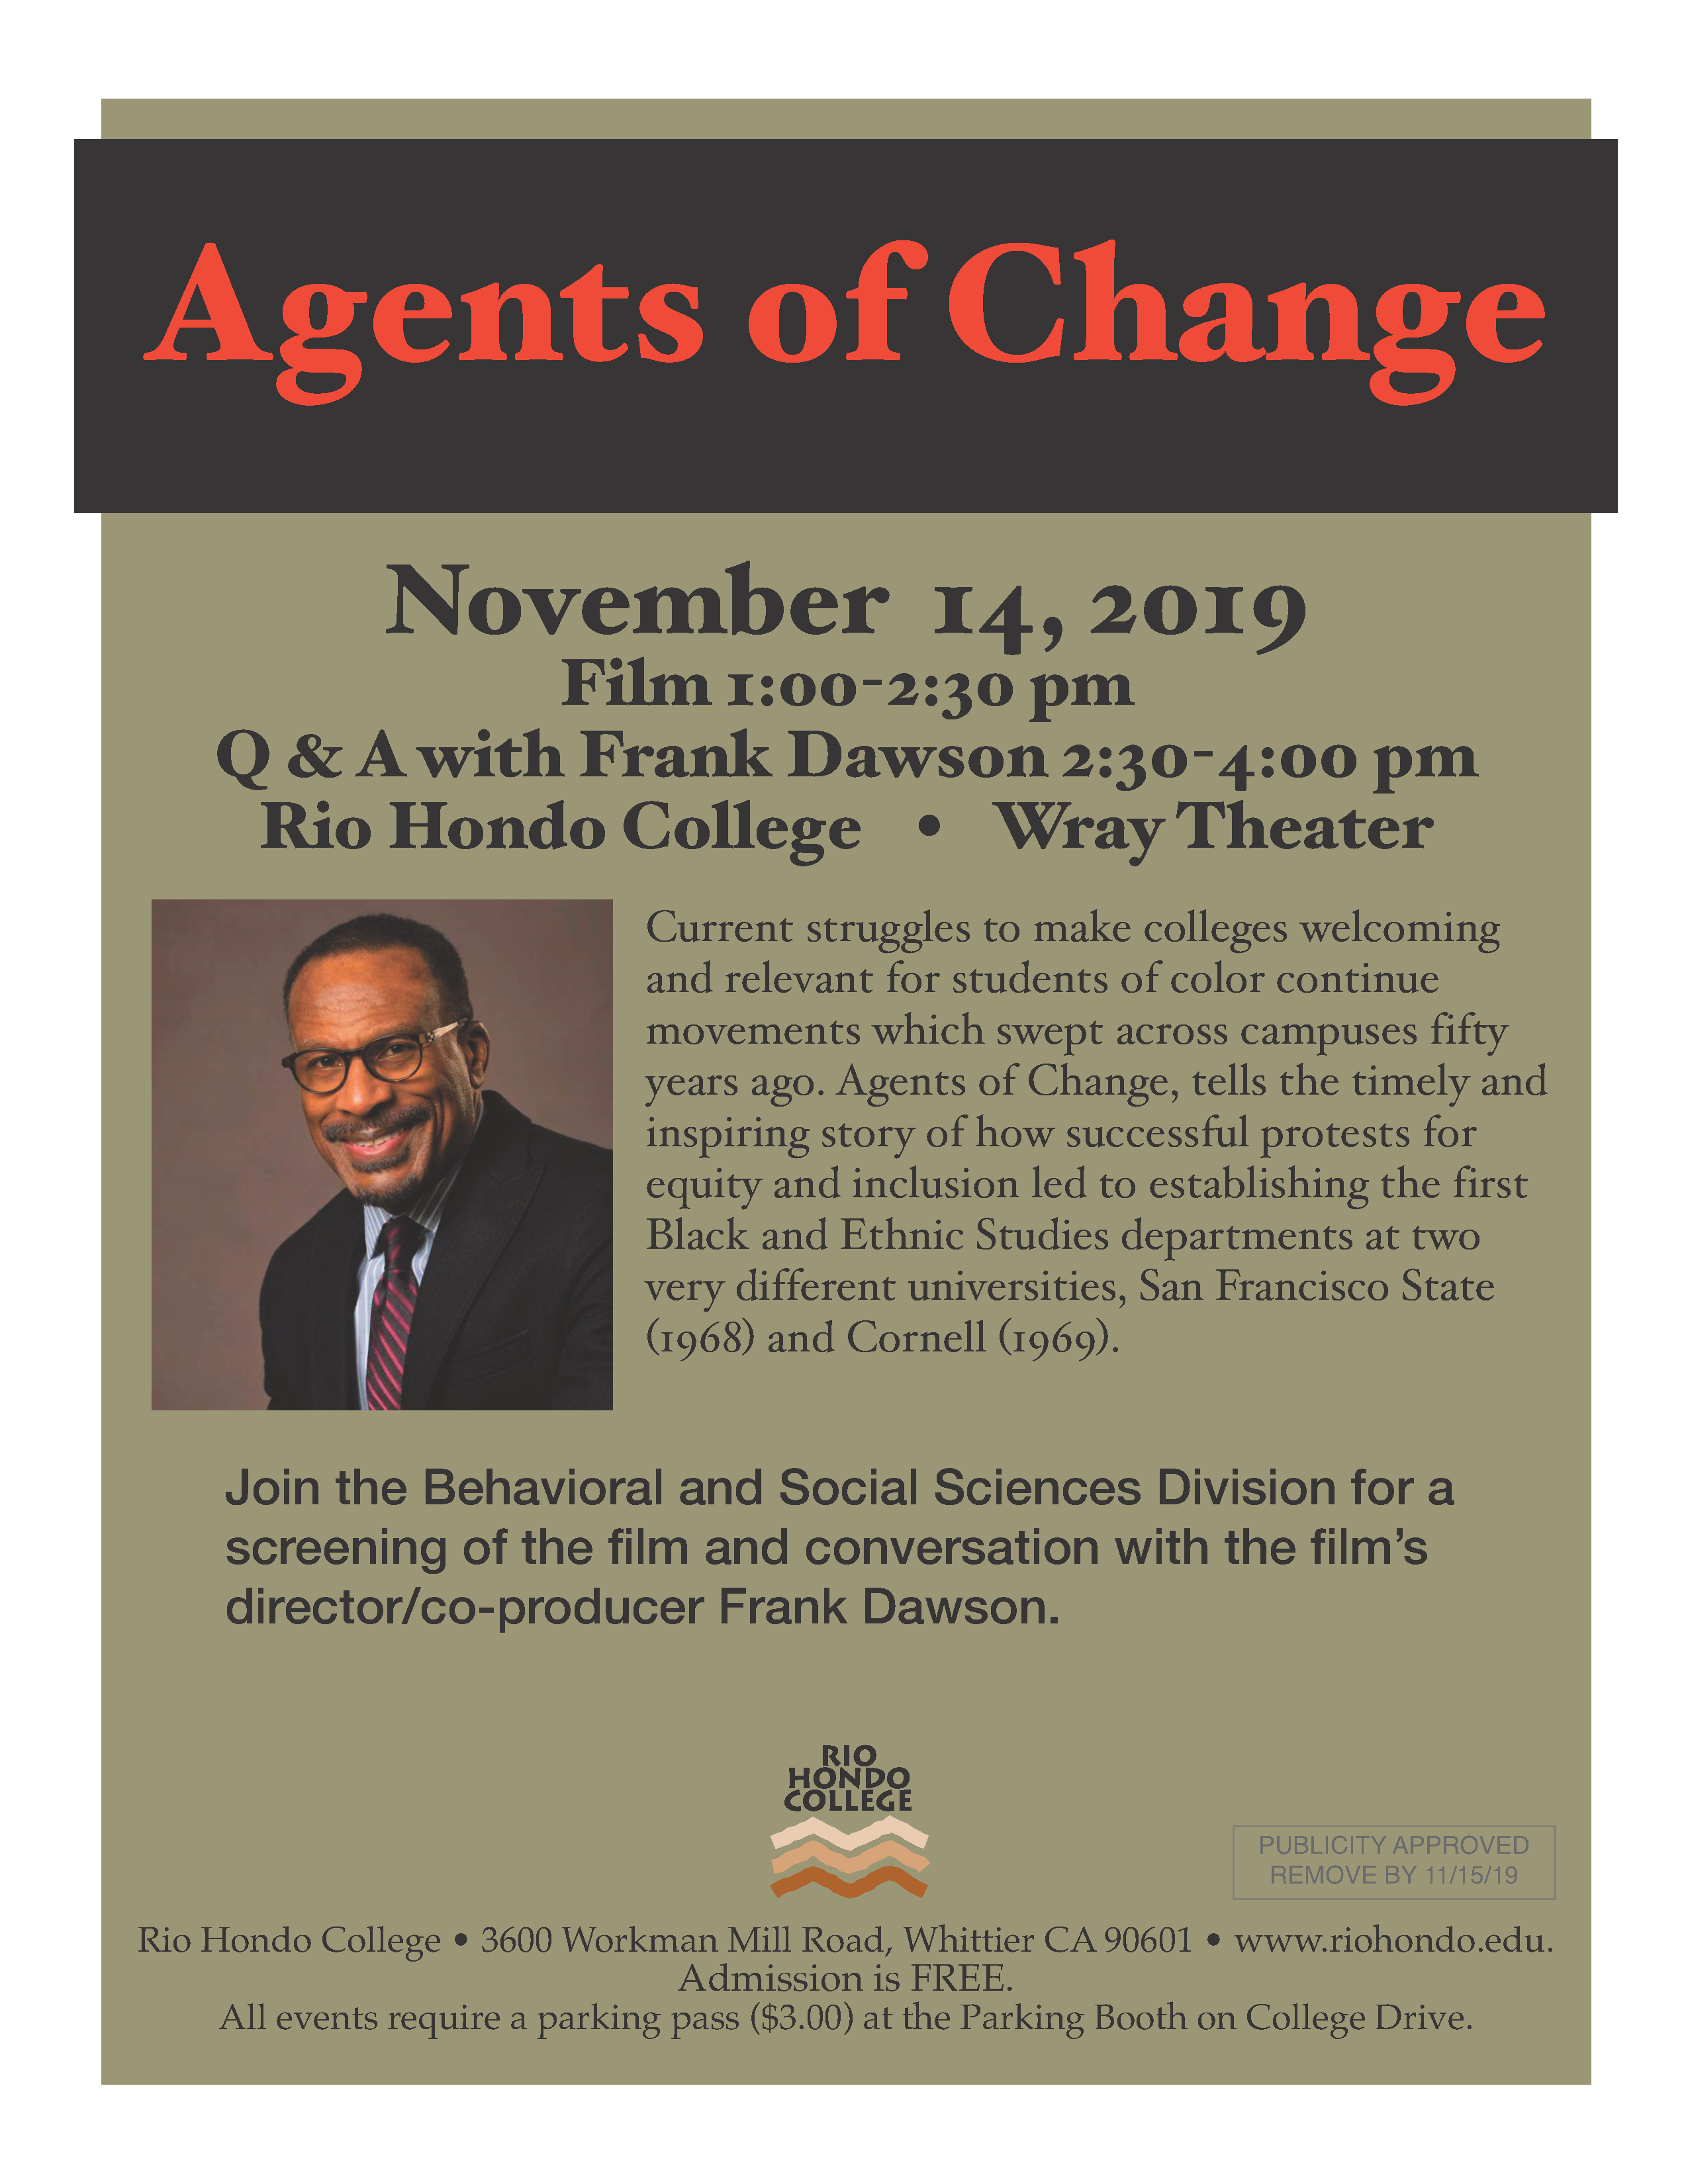 Agents of Change - Film Screening & Conversation with Director Frank Dawson @ Wray Theater